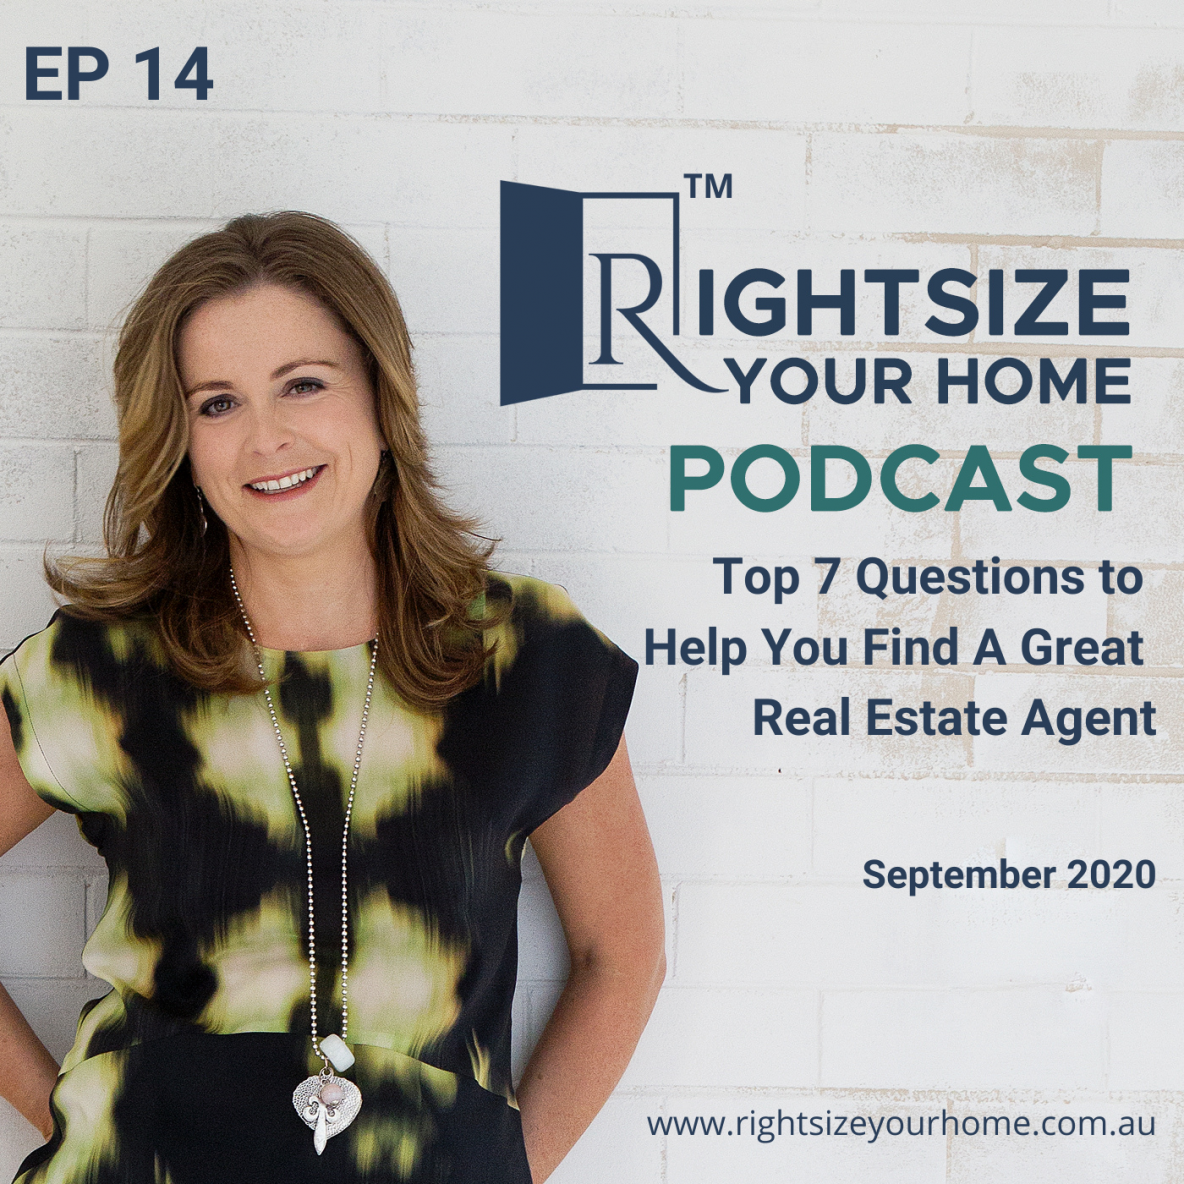 Top 7 Questions to Help You Find A Great Real Estate Agent